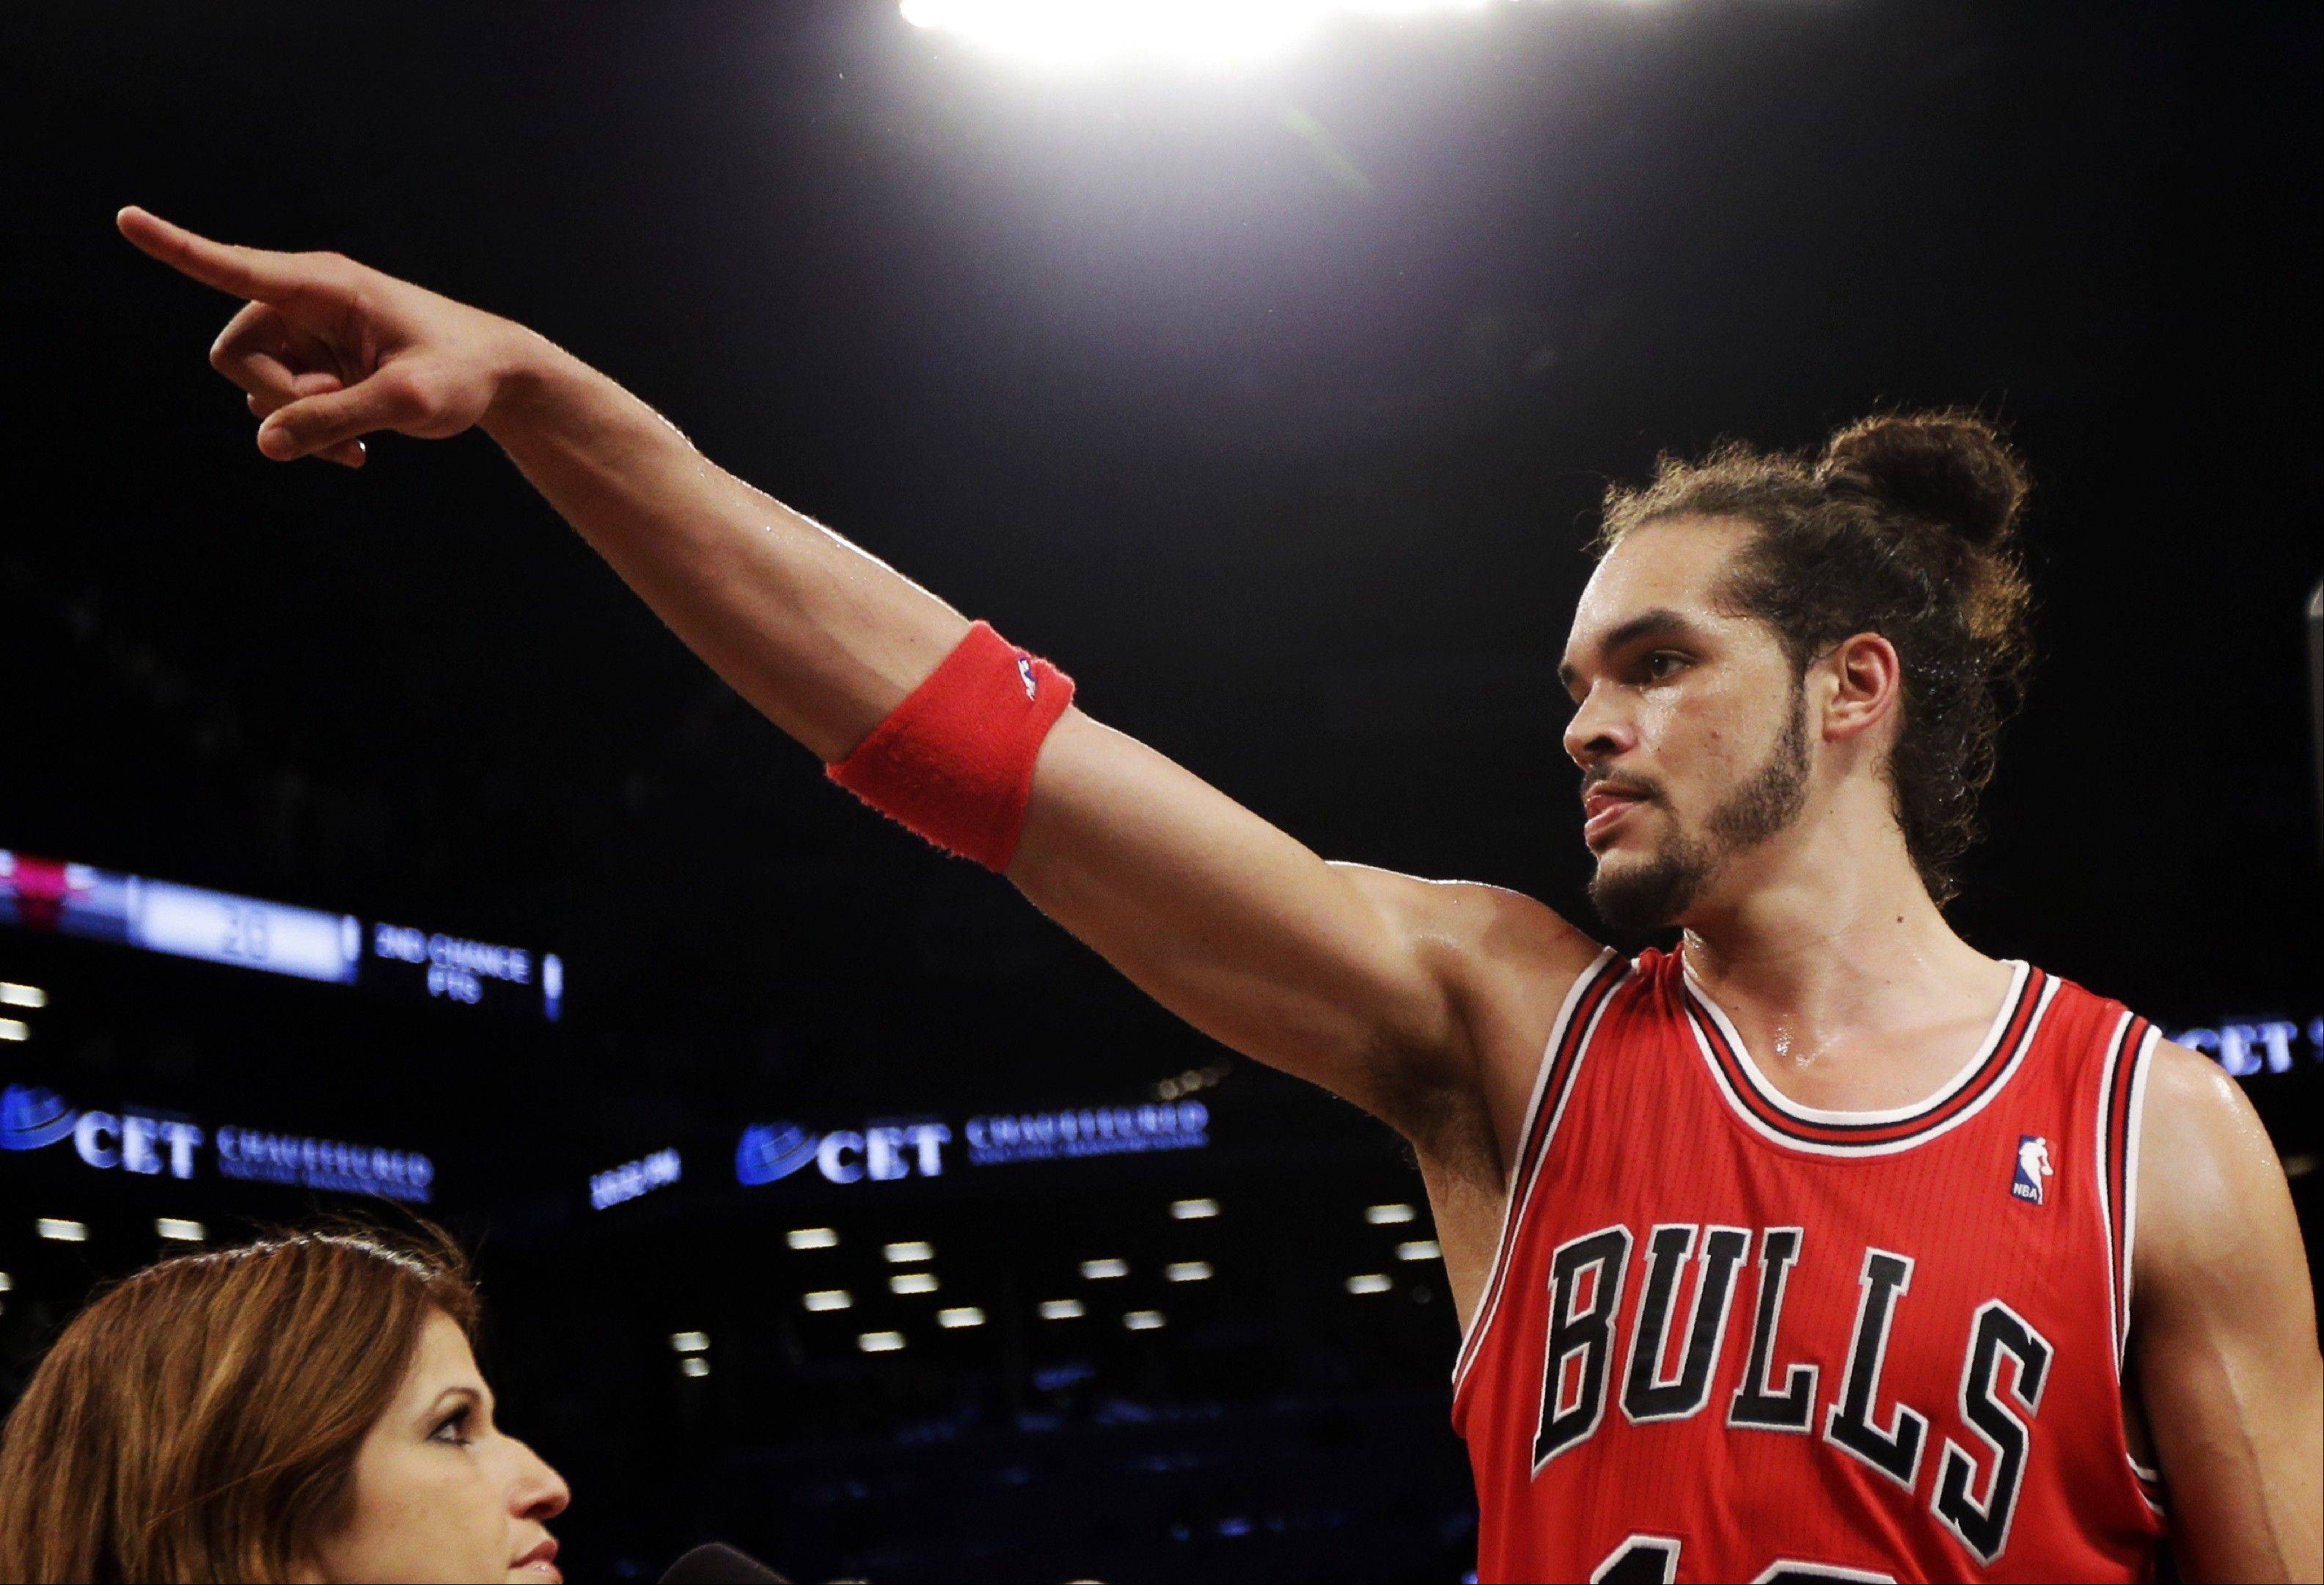 Joakim Noah celebrates with after defeating the Brooklyn Nets 99-93 in Game 7 of their first-round NBA basketball playoff series in New York, Saturday, May 4, 2013. The Bulls won the series to advance to a second-round series against the Miami Heat beginning Monday.